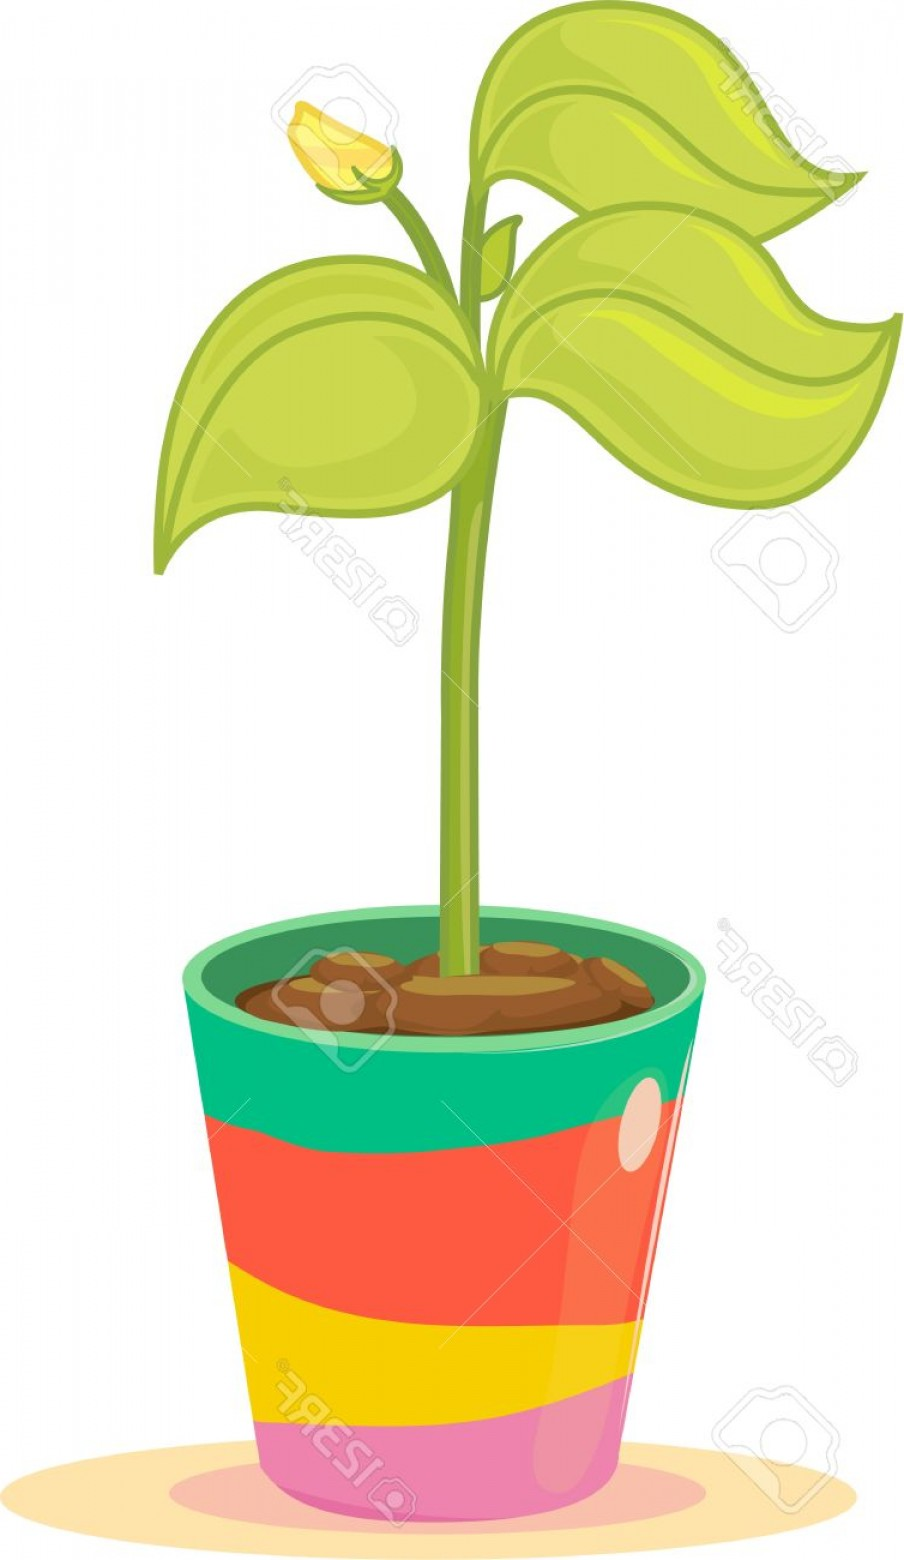 Vector Image Of A Budding Flower: Photobudding Yellow Flower In Colourful Plant Pot